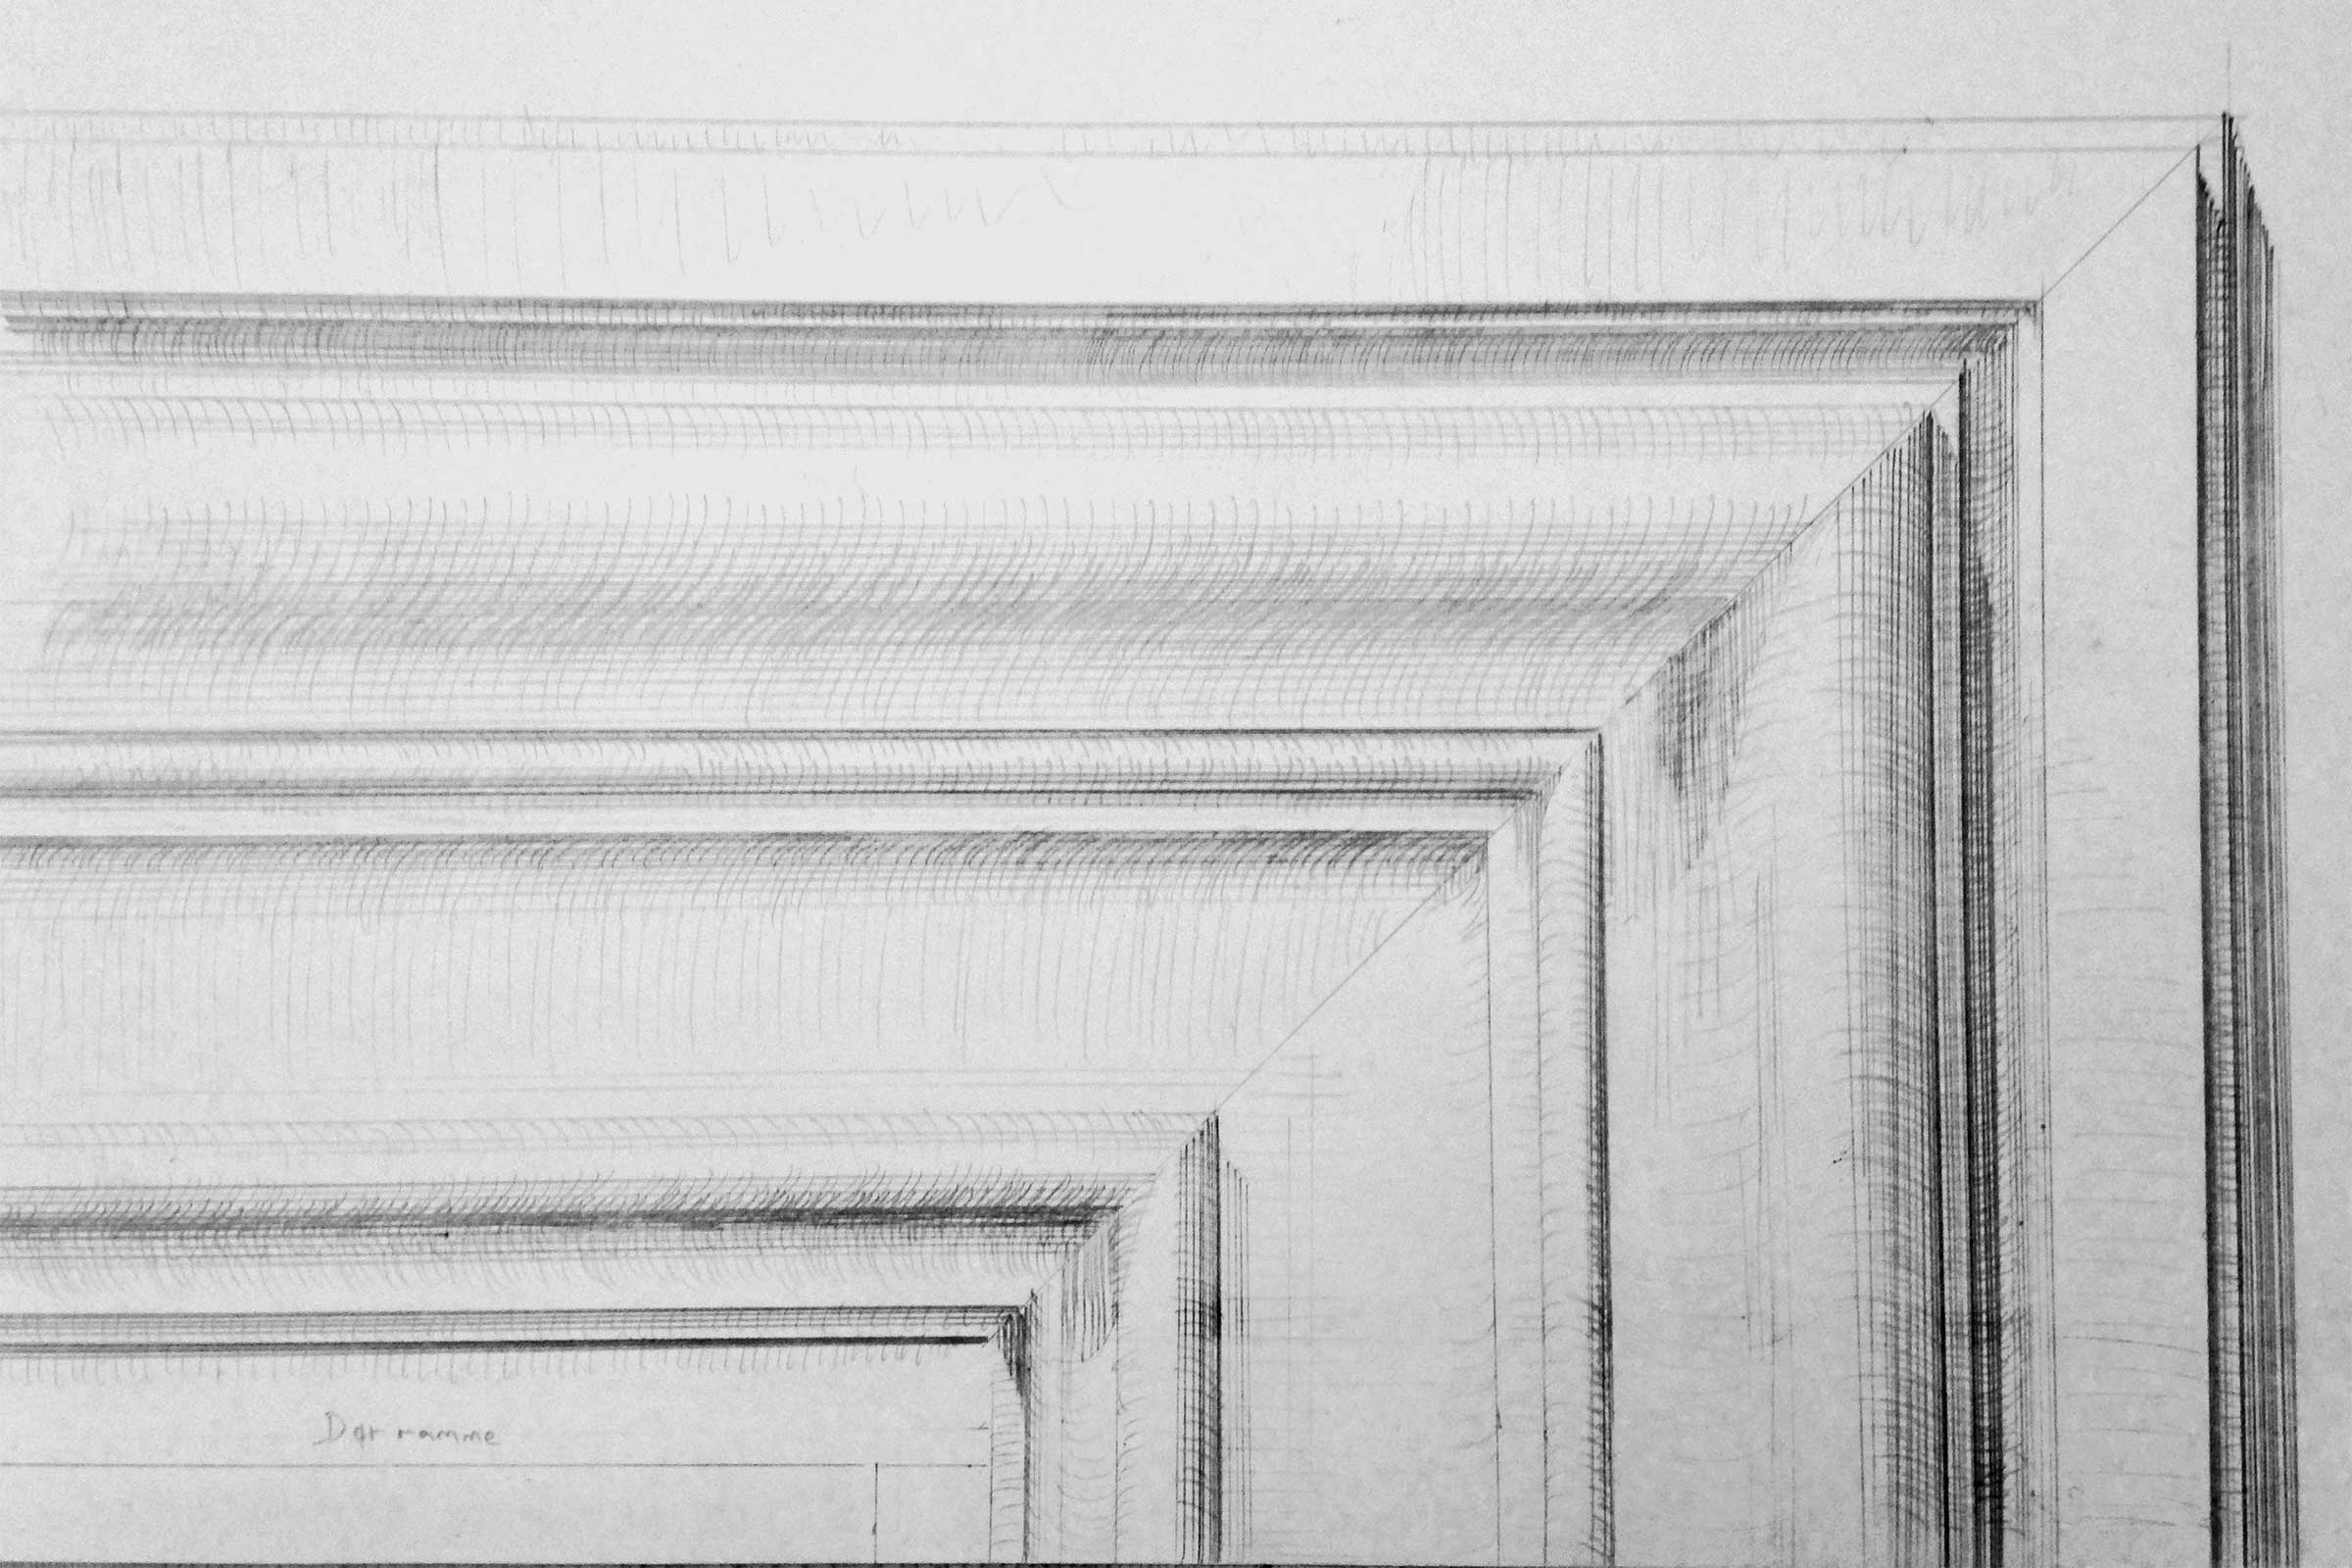 claus lind © panels gjersholt manor classic architecture architraves